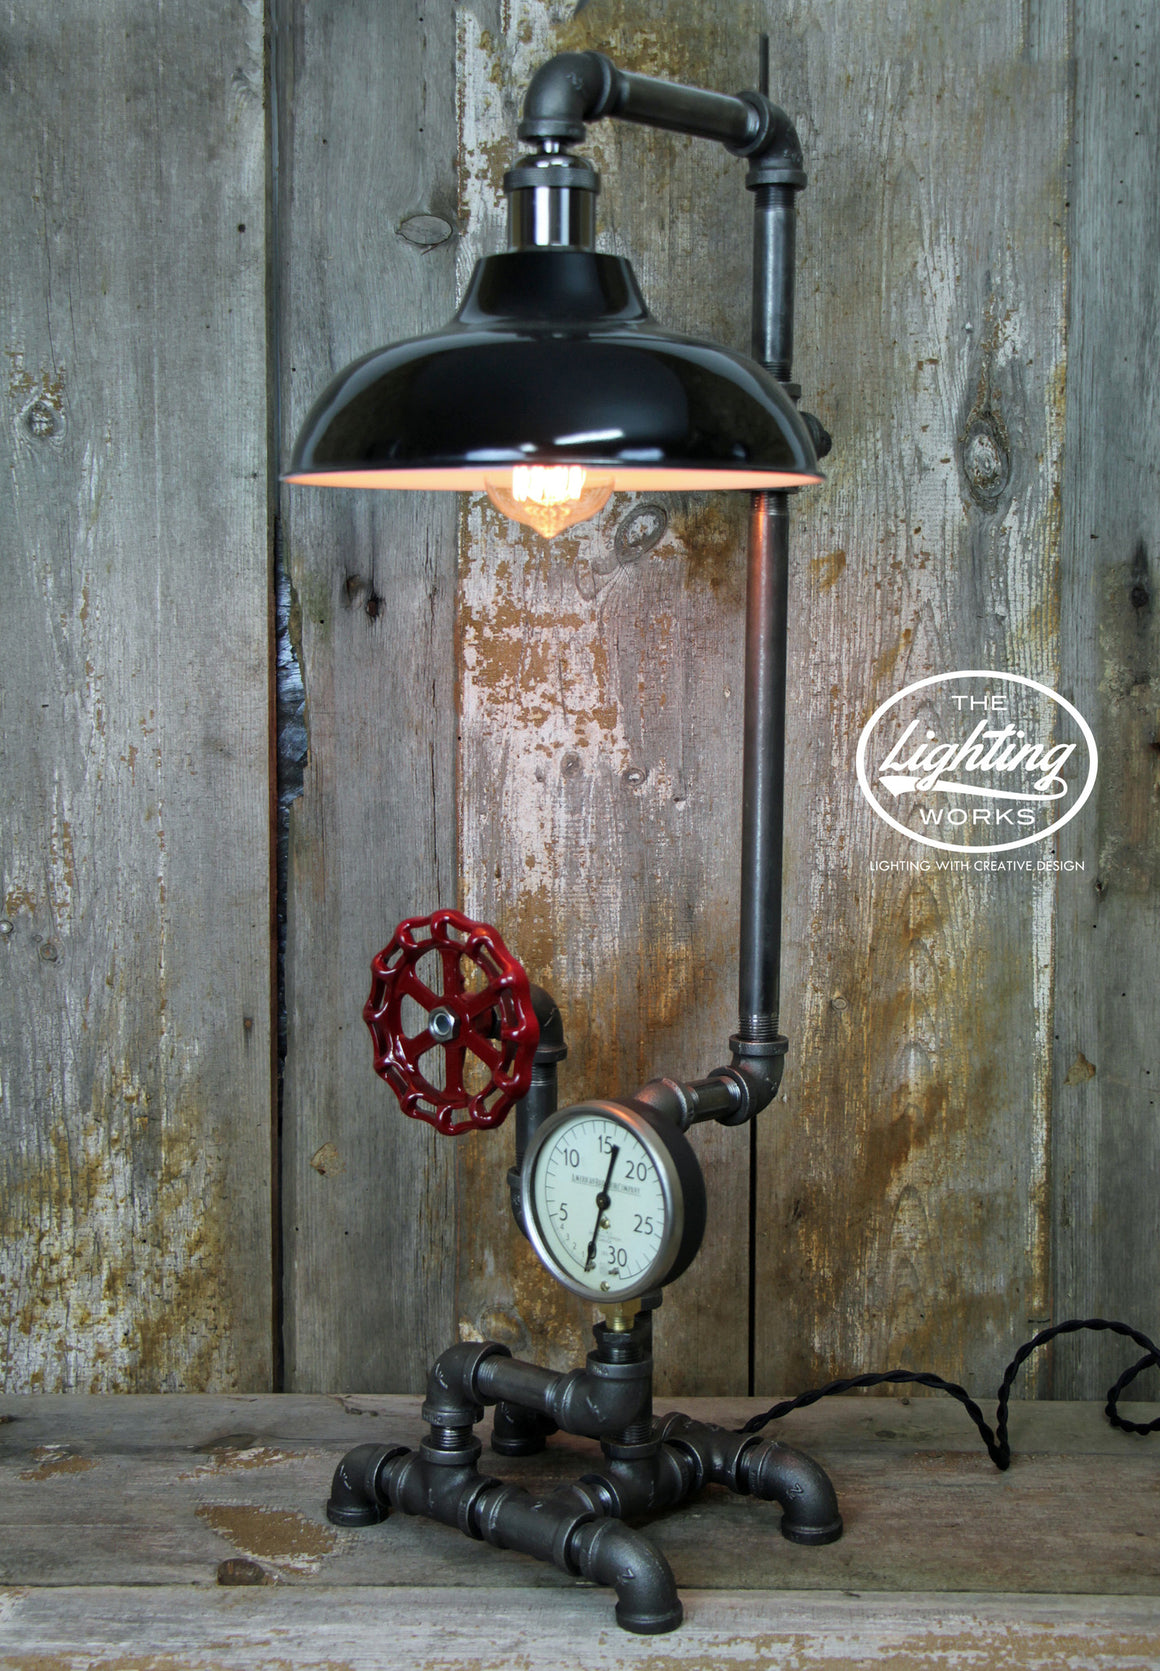 Industrial Table Lamp with a Vintage American Radiator Gauge Copper Shade - The Lighting Works